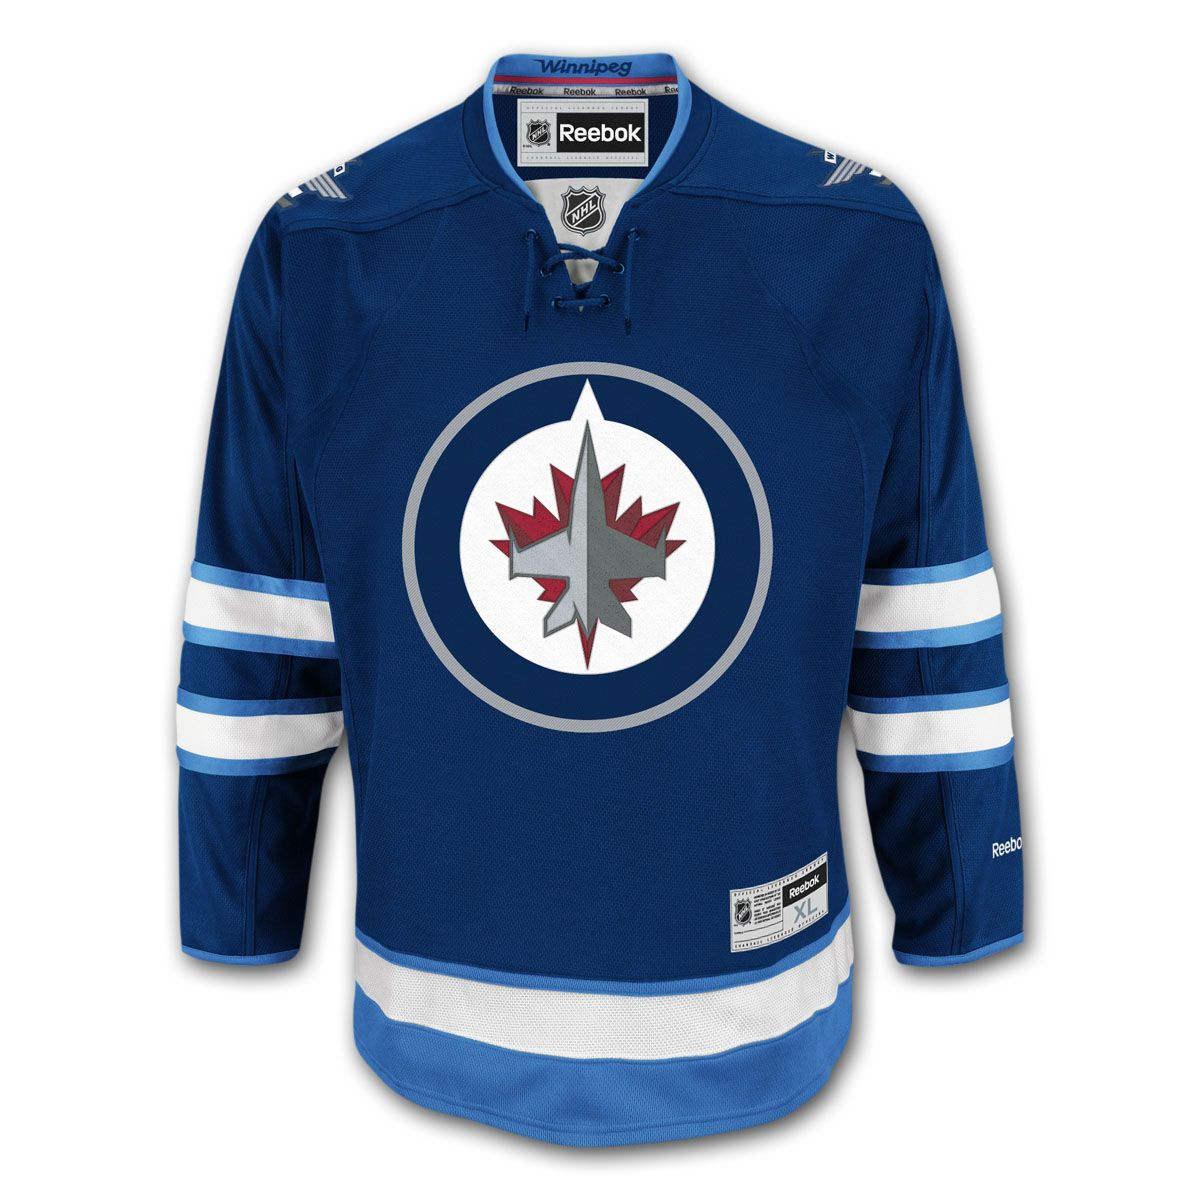 414a8c84e Winnipeg Jets Reebok Premier Replica Home NHL Hockey Jersey